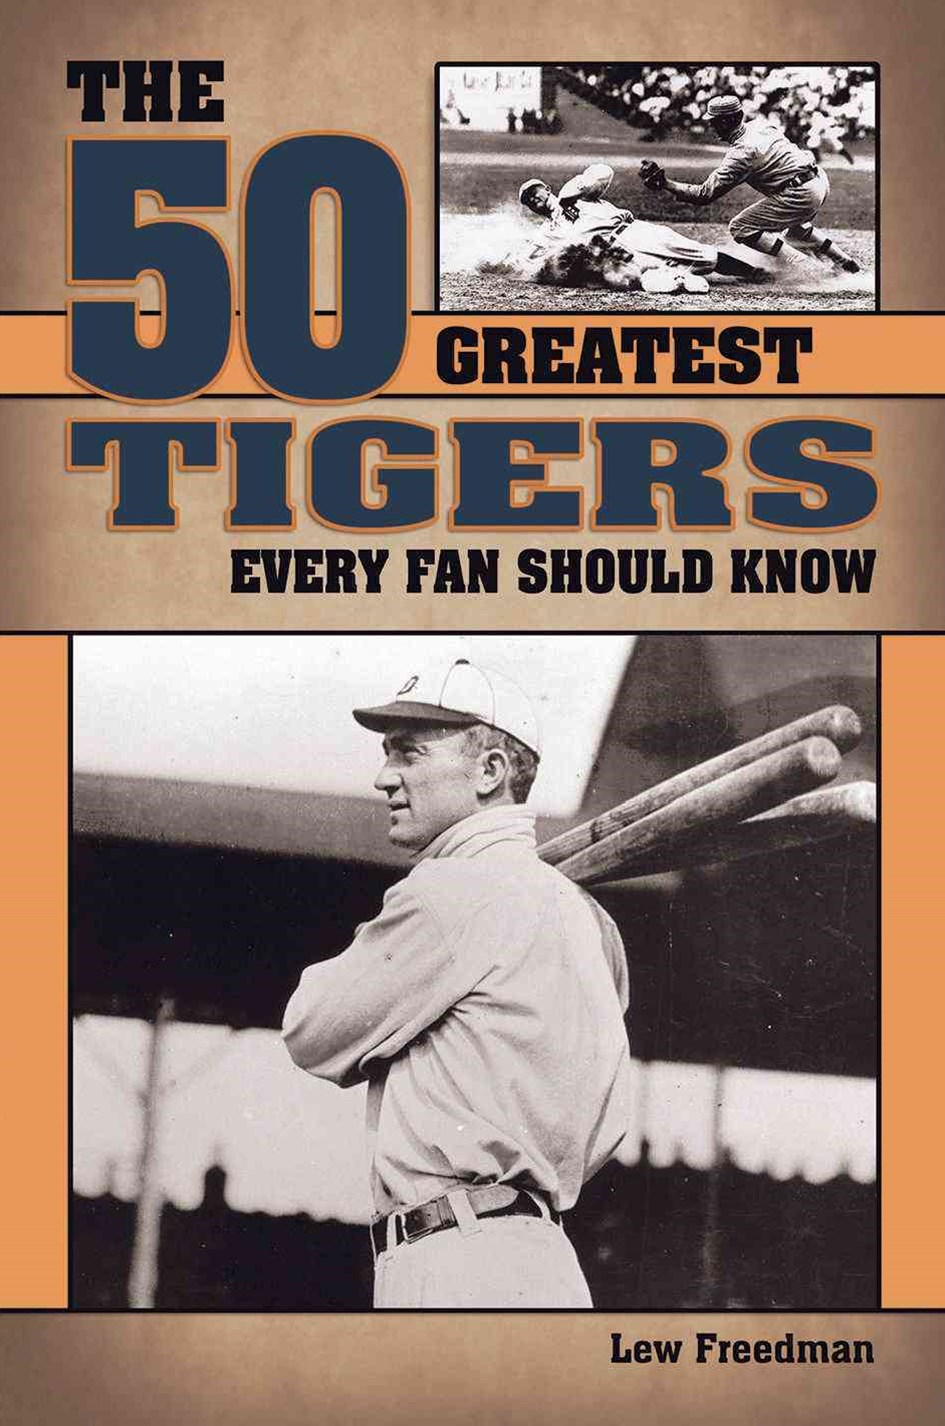 The 50 Greatest Tigers Every Fan Should Know